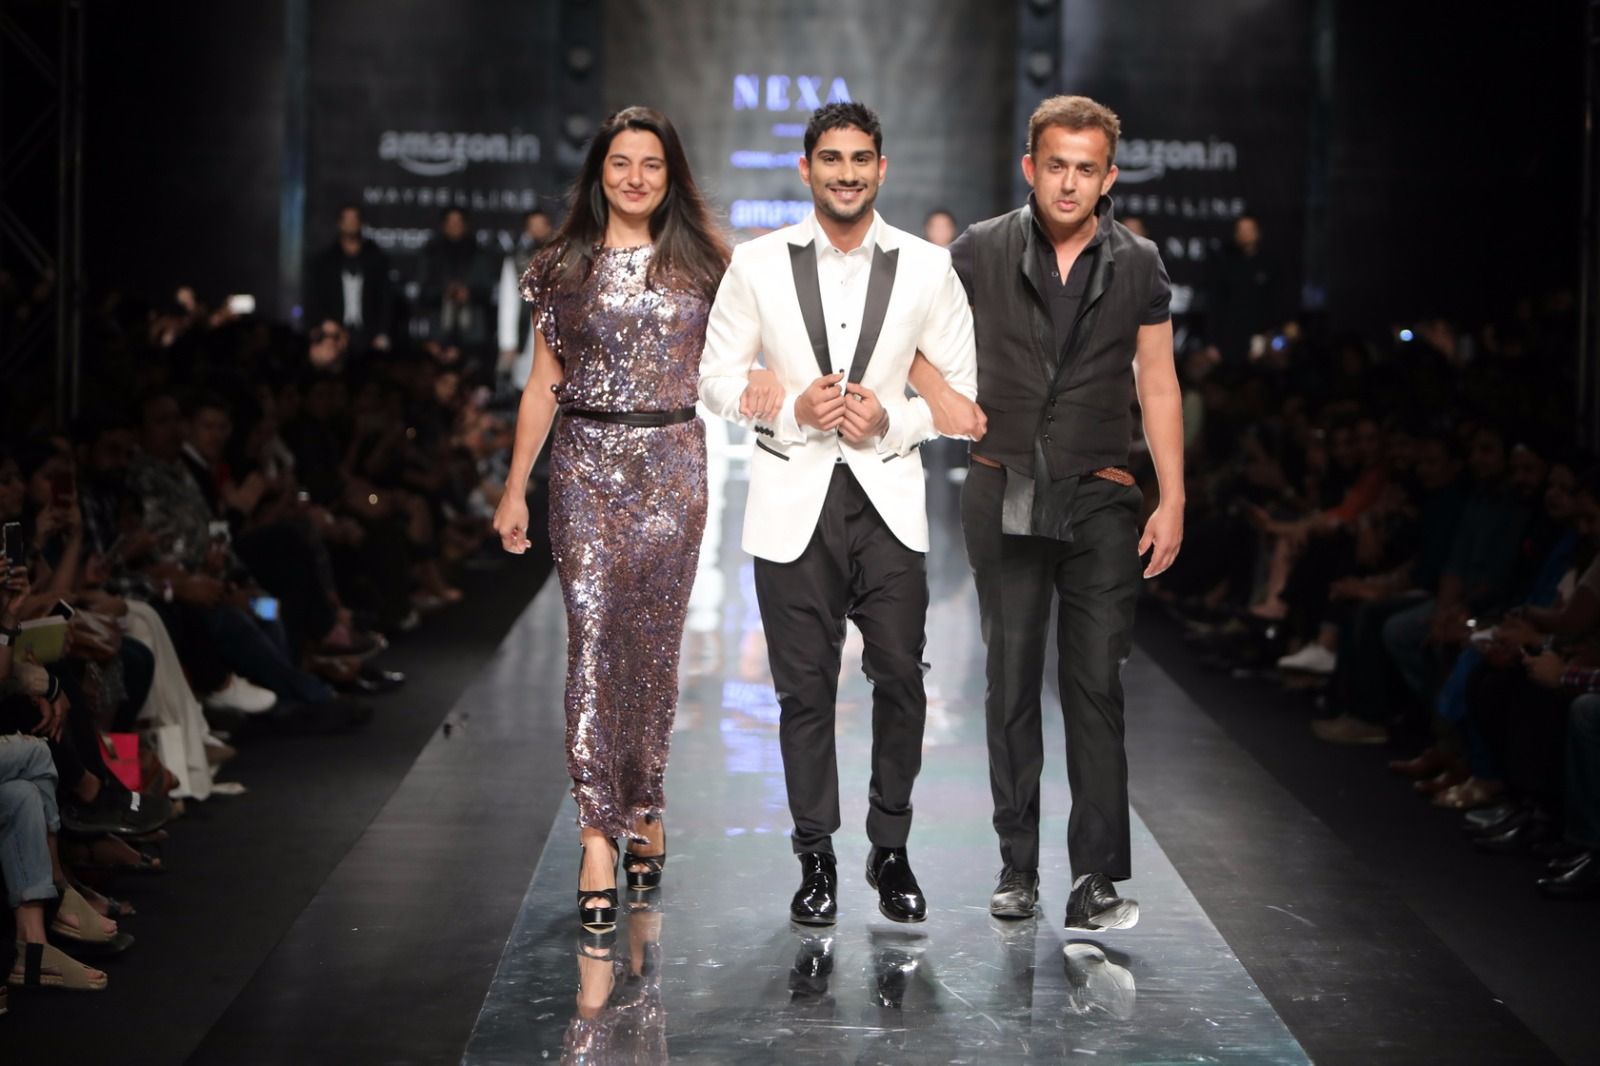 http://www.talksassy.com/wp-content/uploads/2017/03/Amazon-India-Fashion-Week-Autumn-Winter-2017-30.jpg